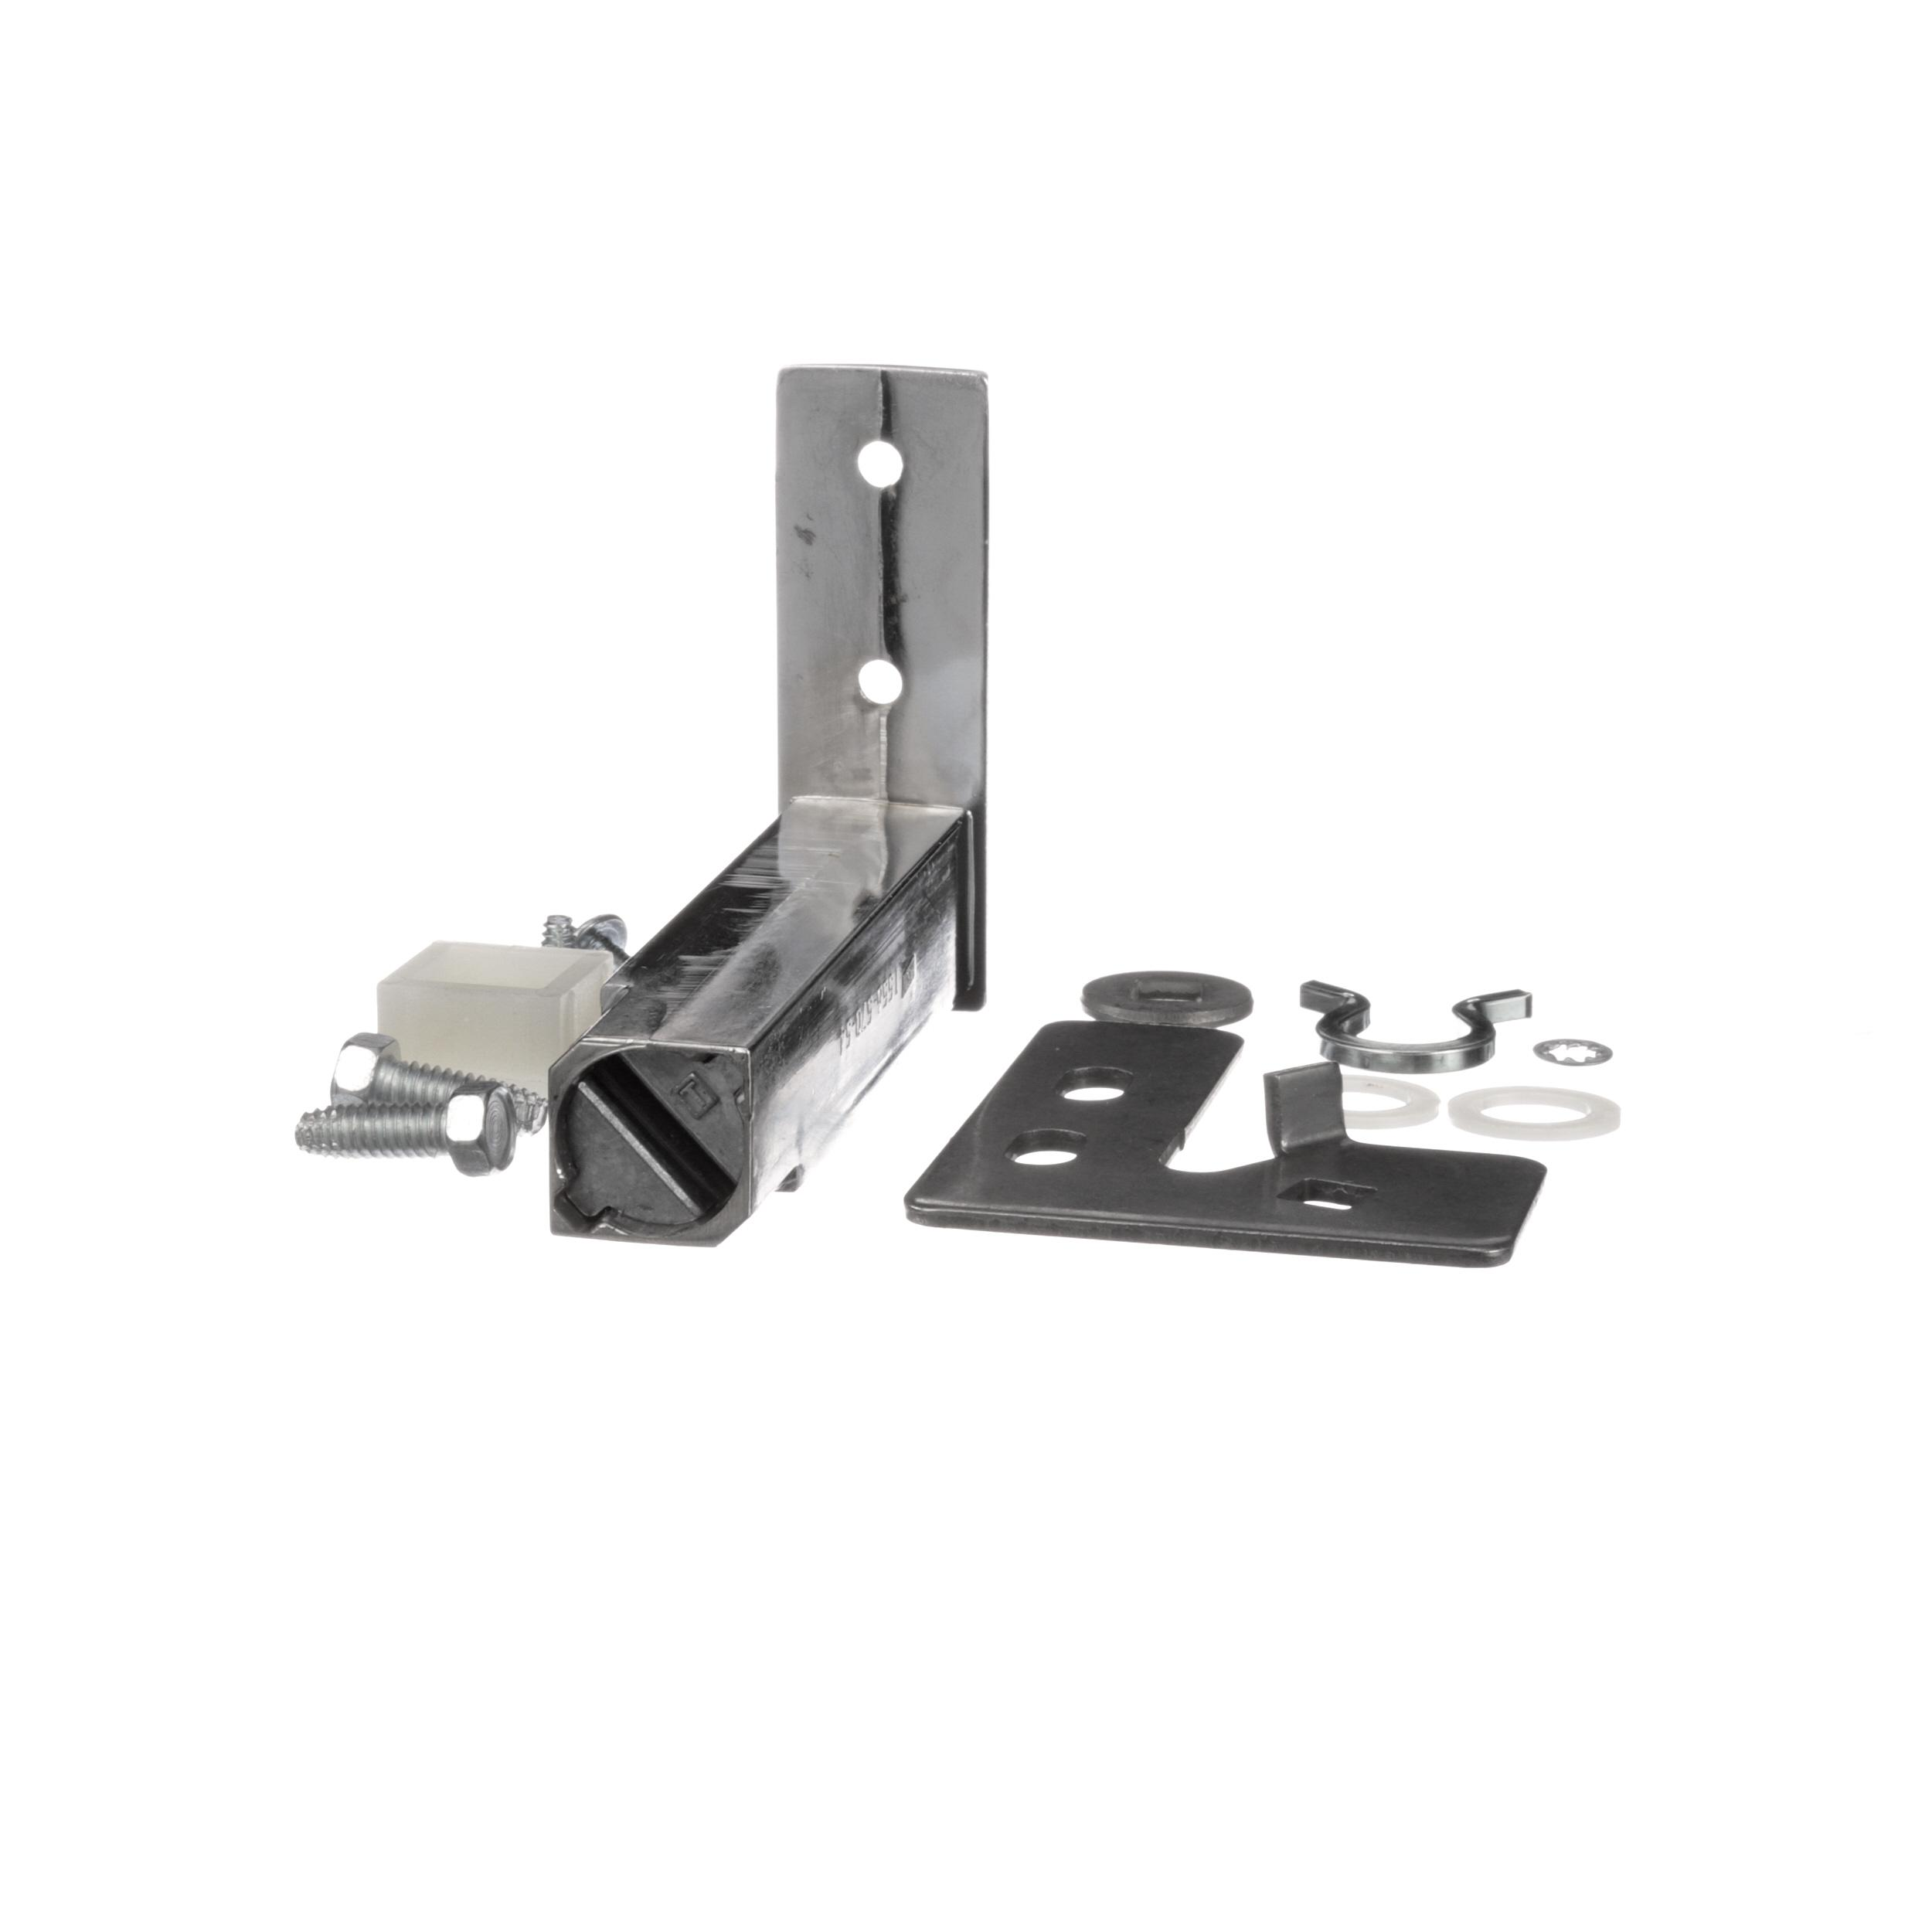 TRUE TOP LH HINGE KIT